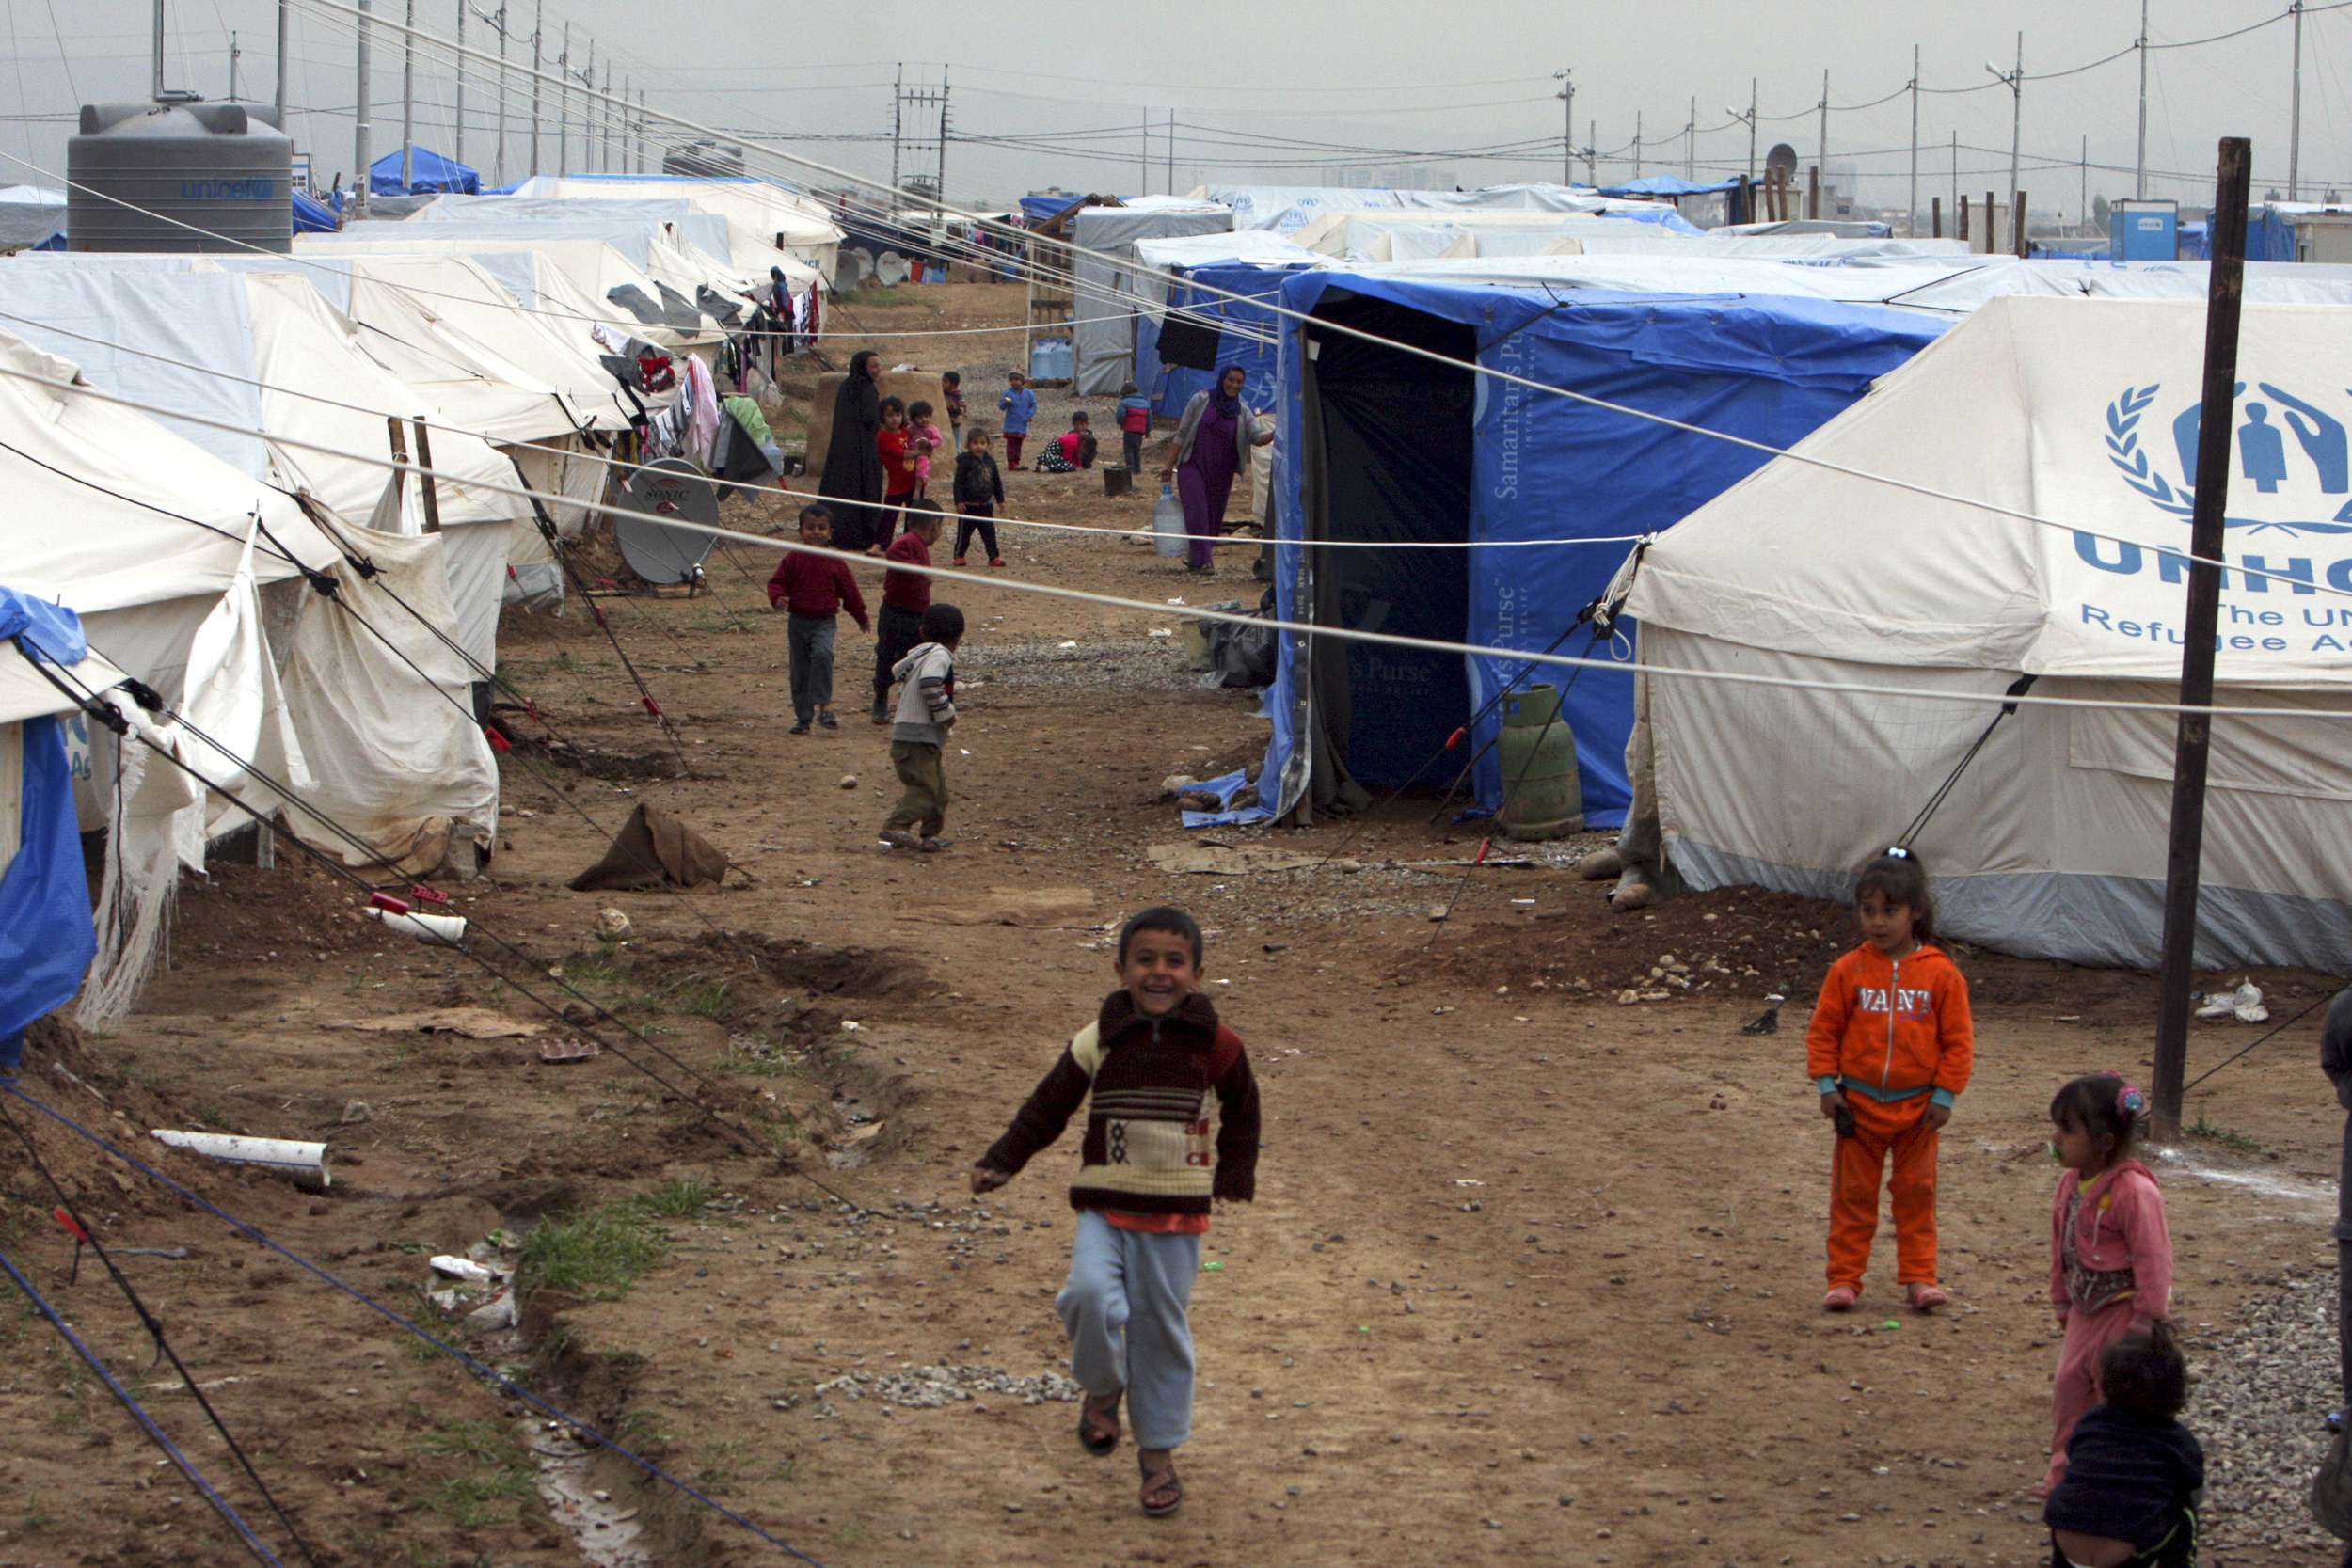 Displaced Iraqi children, who fled from Islamic State violence in Mosul, play in refugee camp on the outskirts of the Kurdish city of Irbil, December 1, 2014.